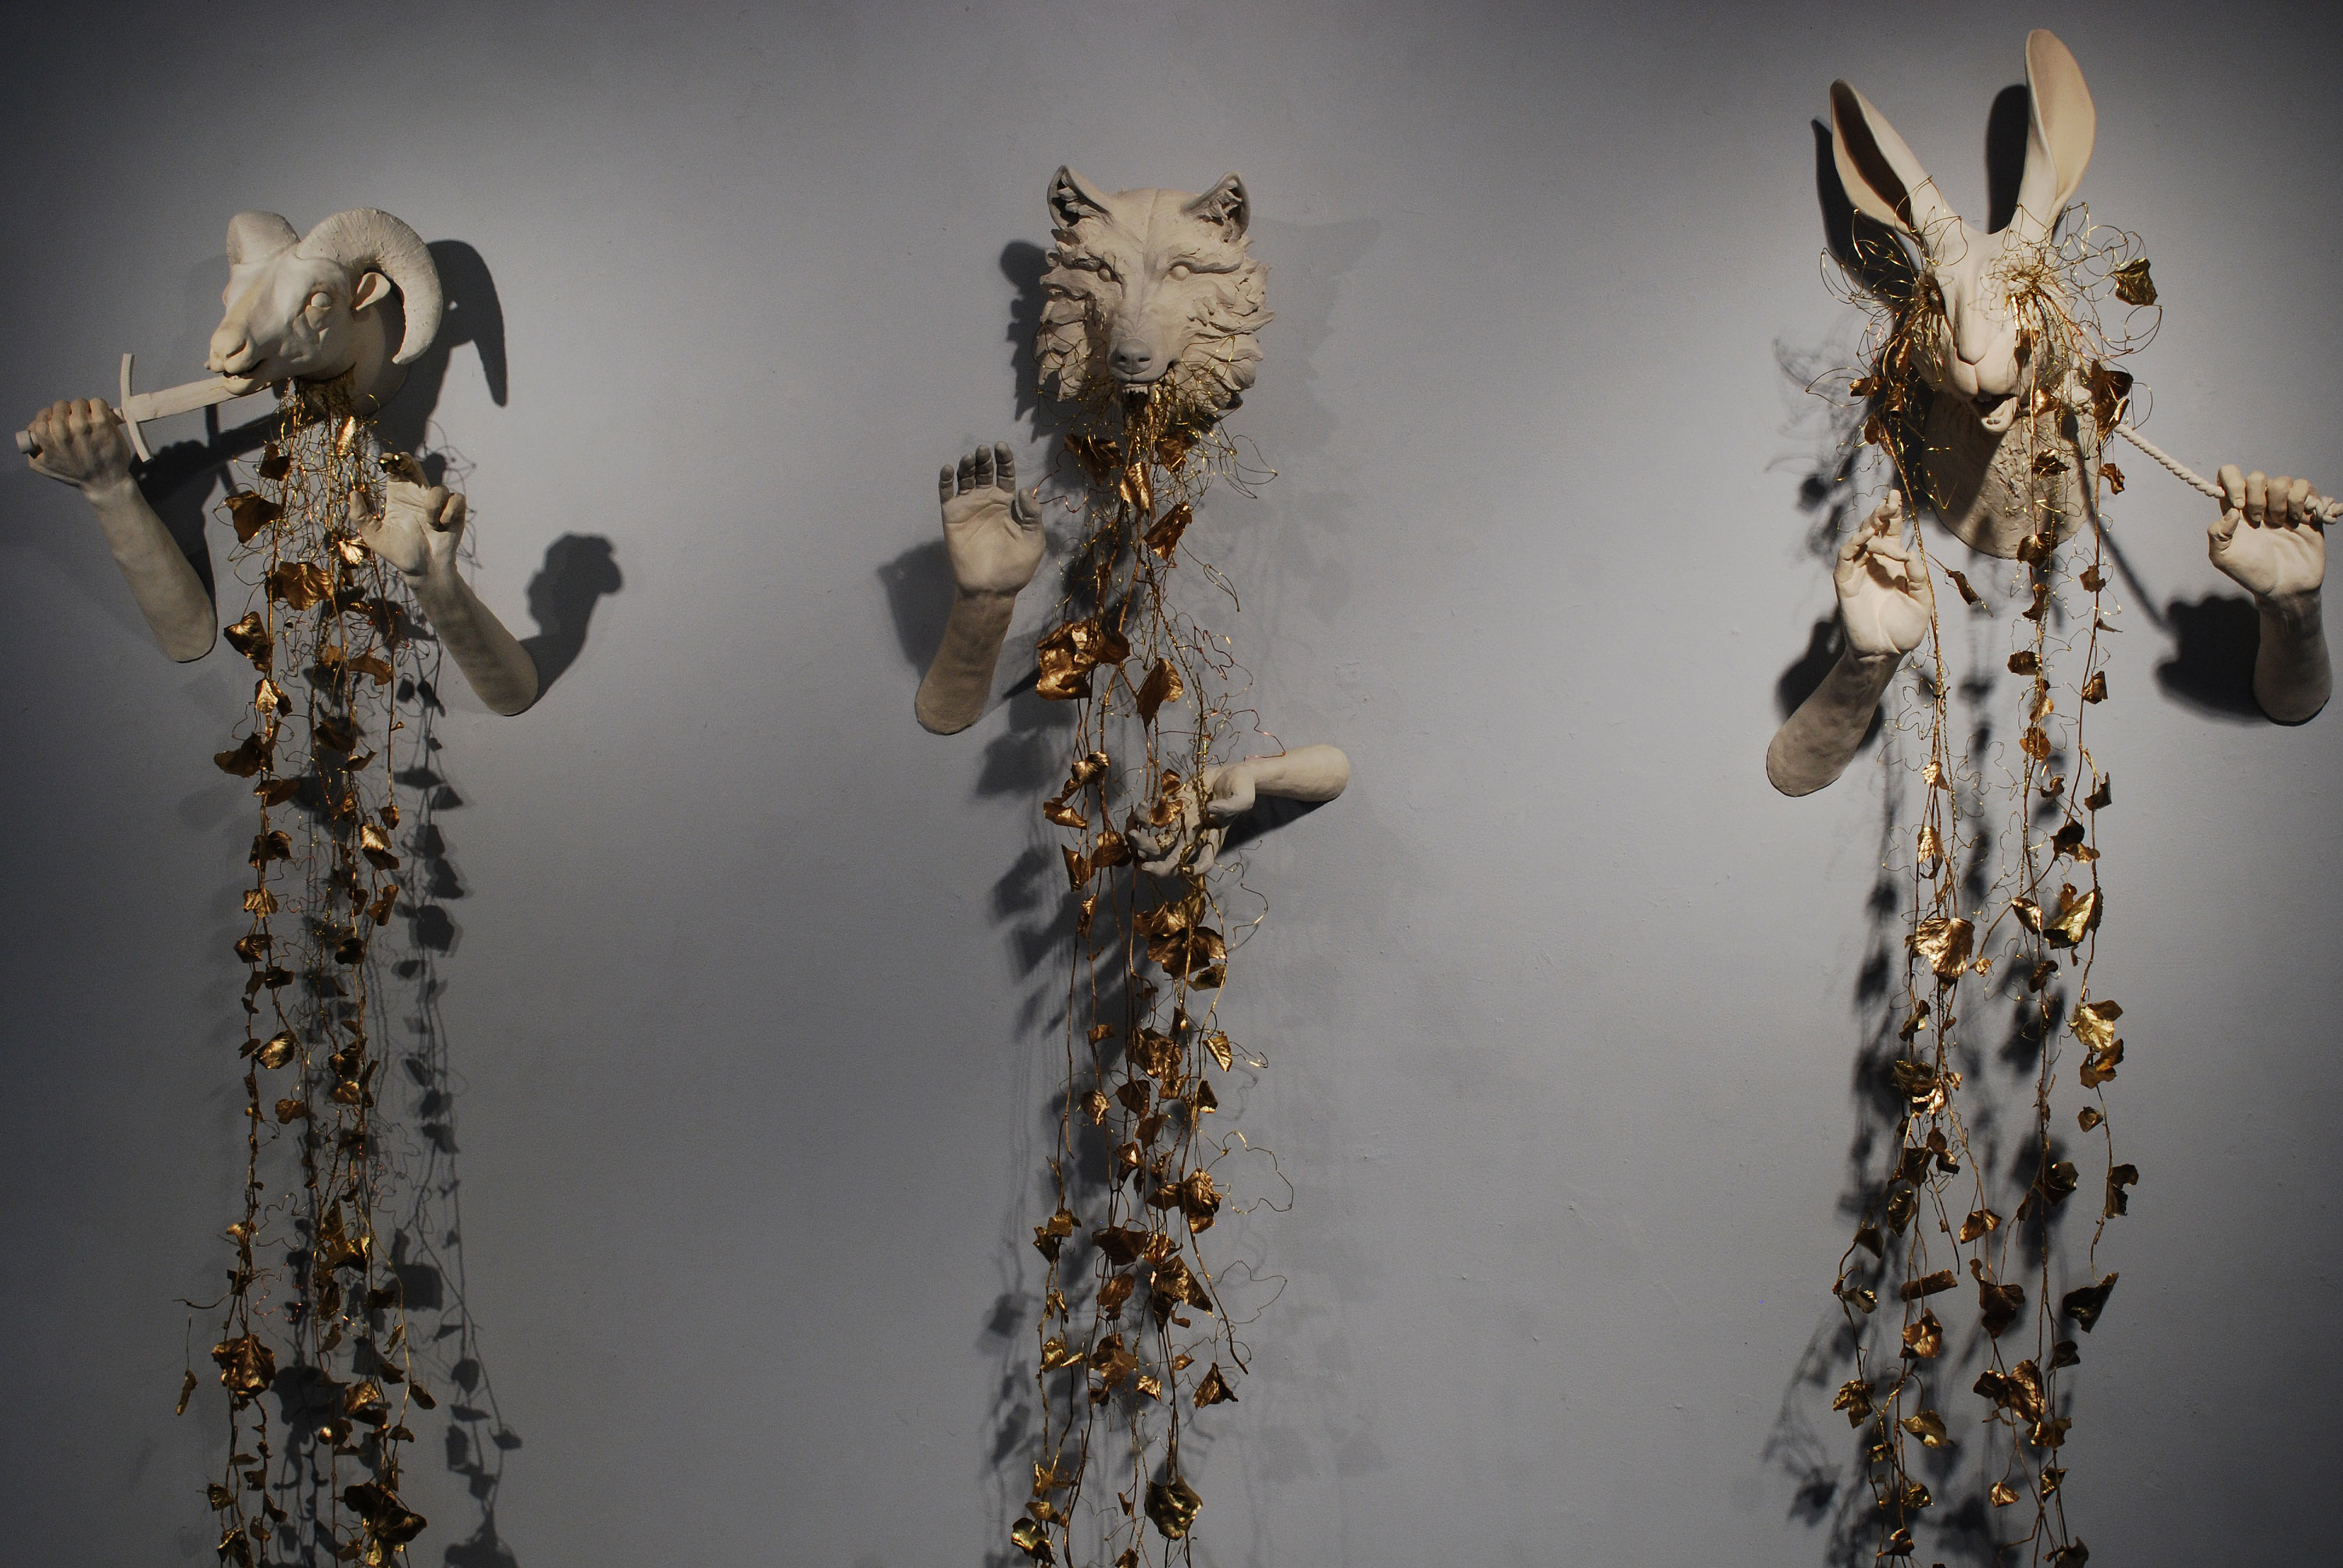 Three sculptures hanging on a wall. A goat, a wolf, and a rabbit.